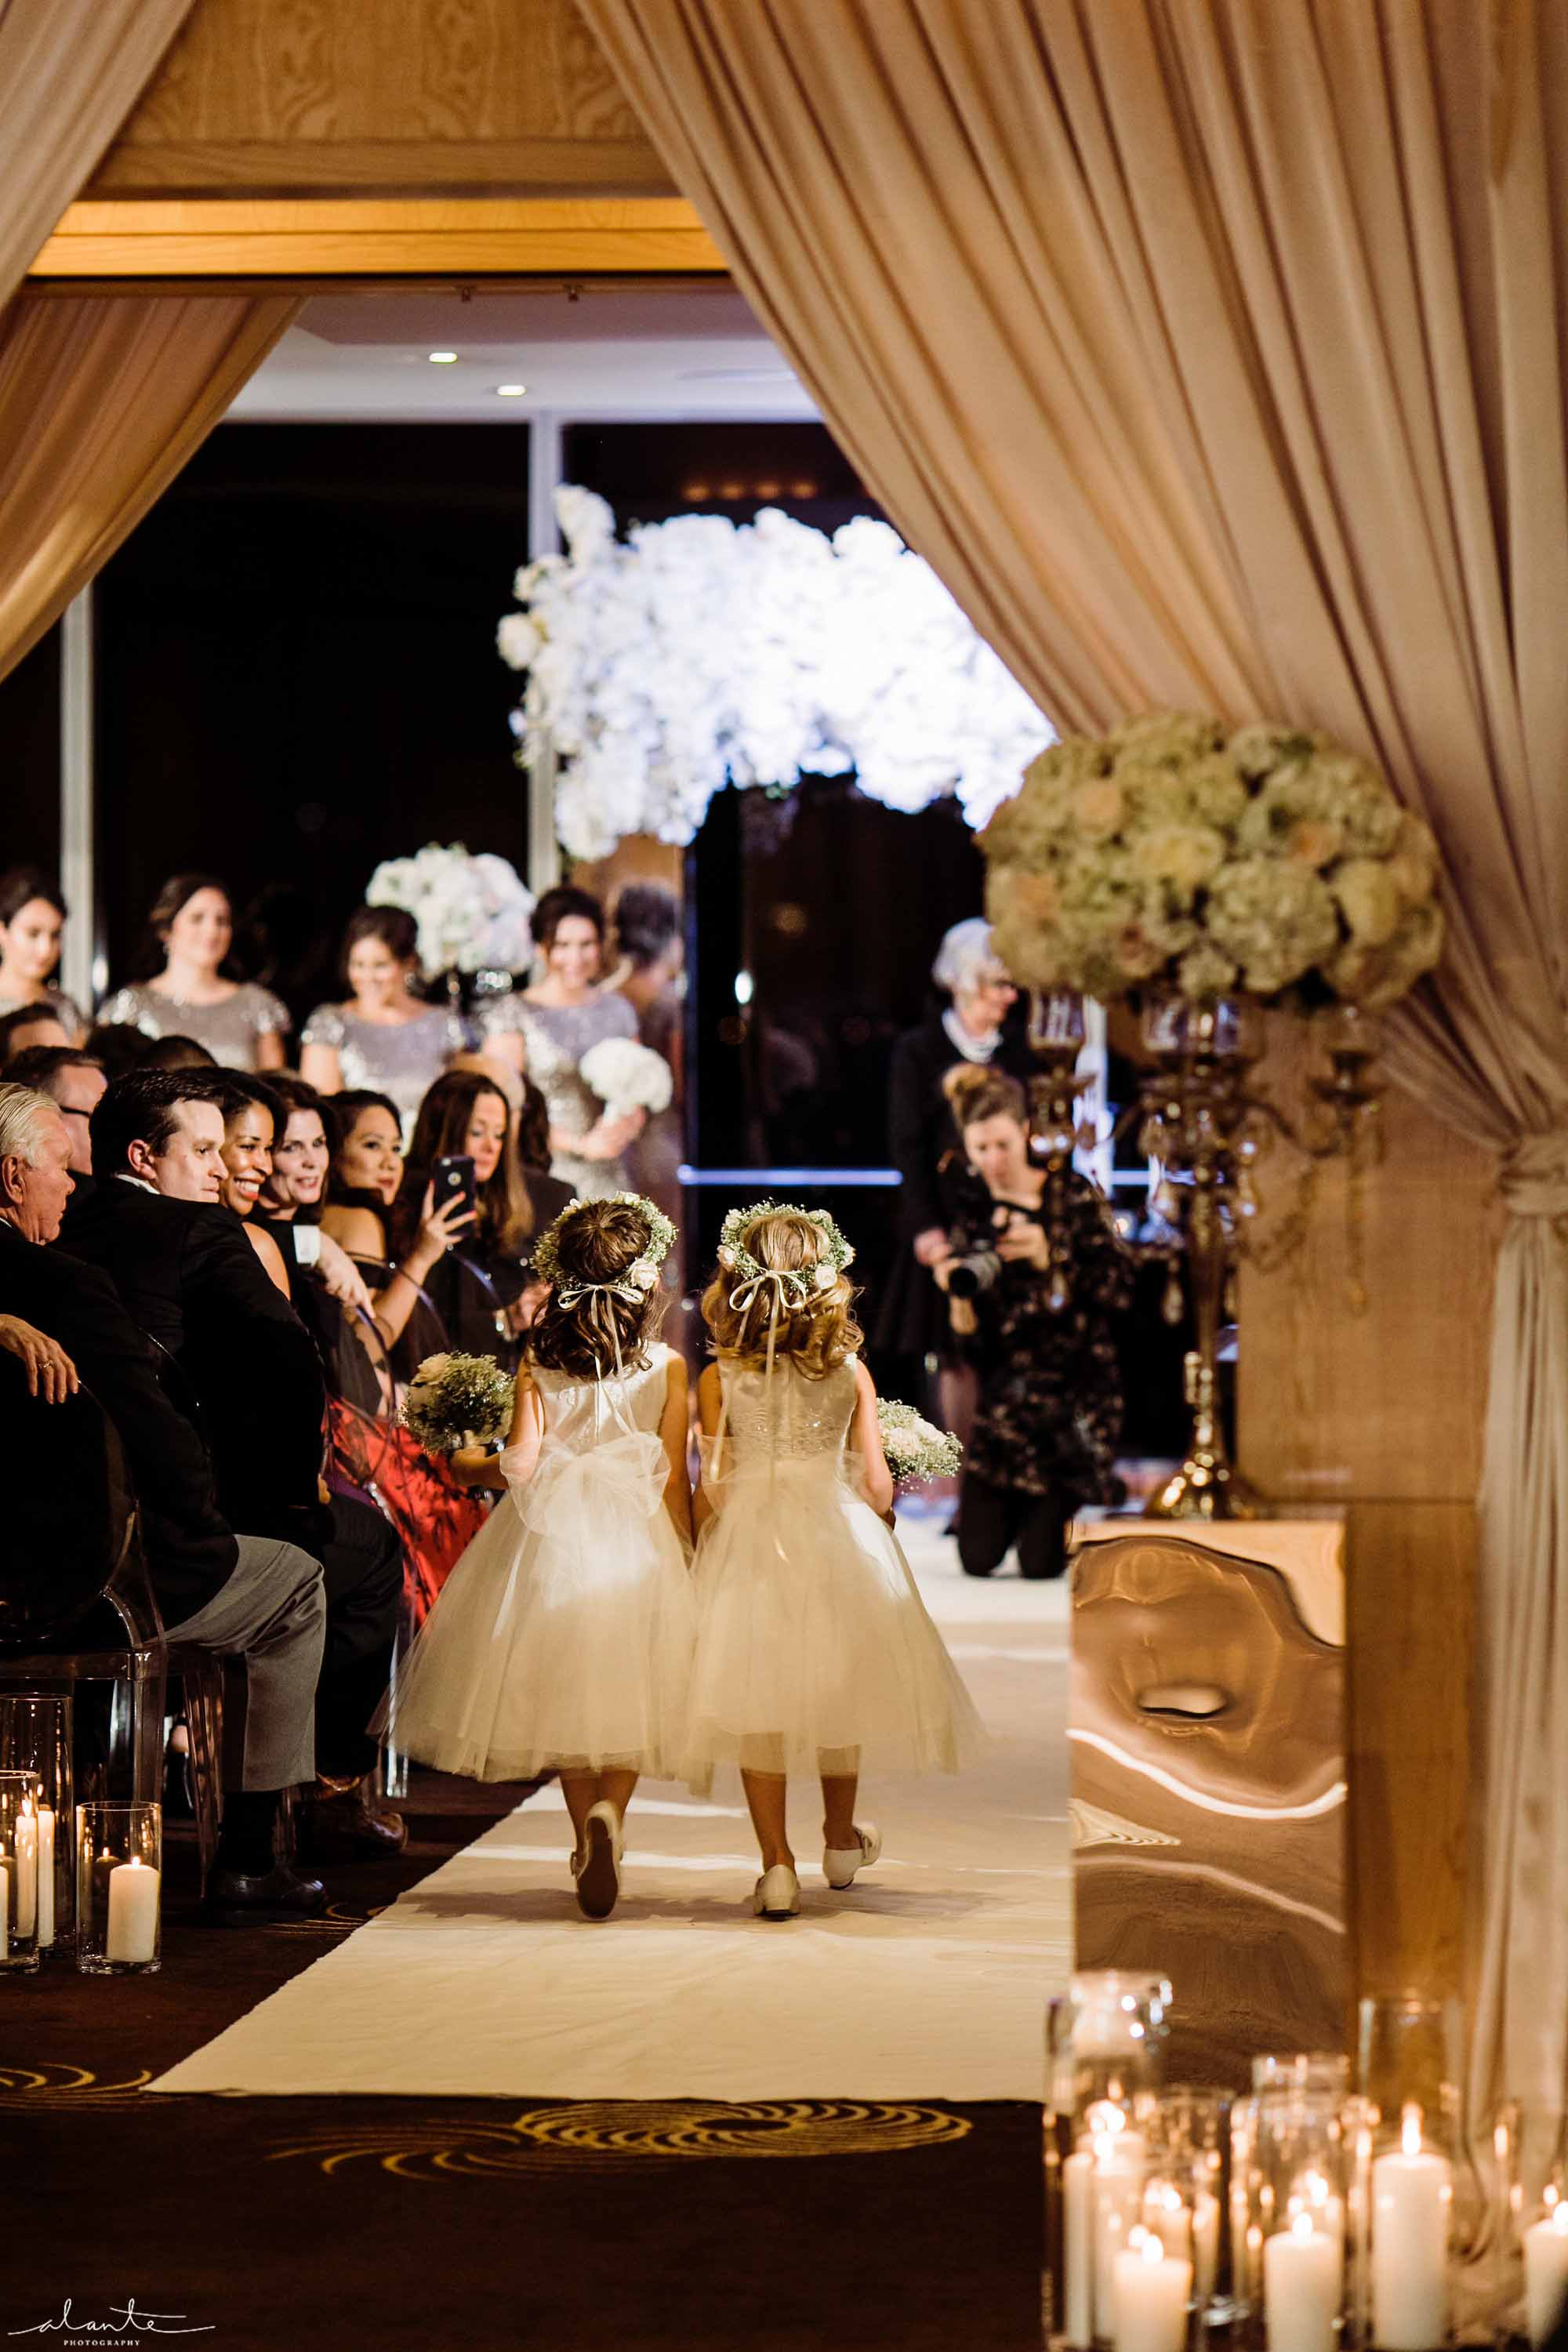 Wedding ceremony with two flower girls walking down aisle - Luxury Winter Wedding at the Four Seasons by Flora Nova Design Seattle